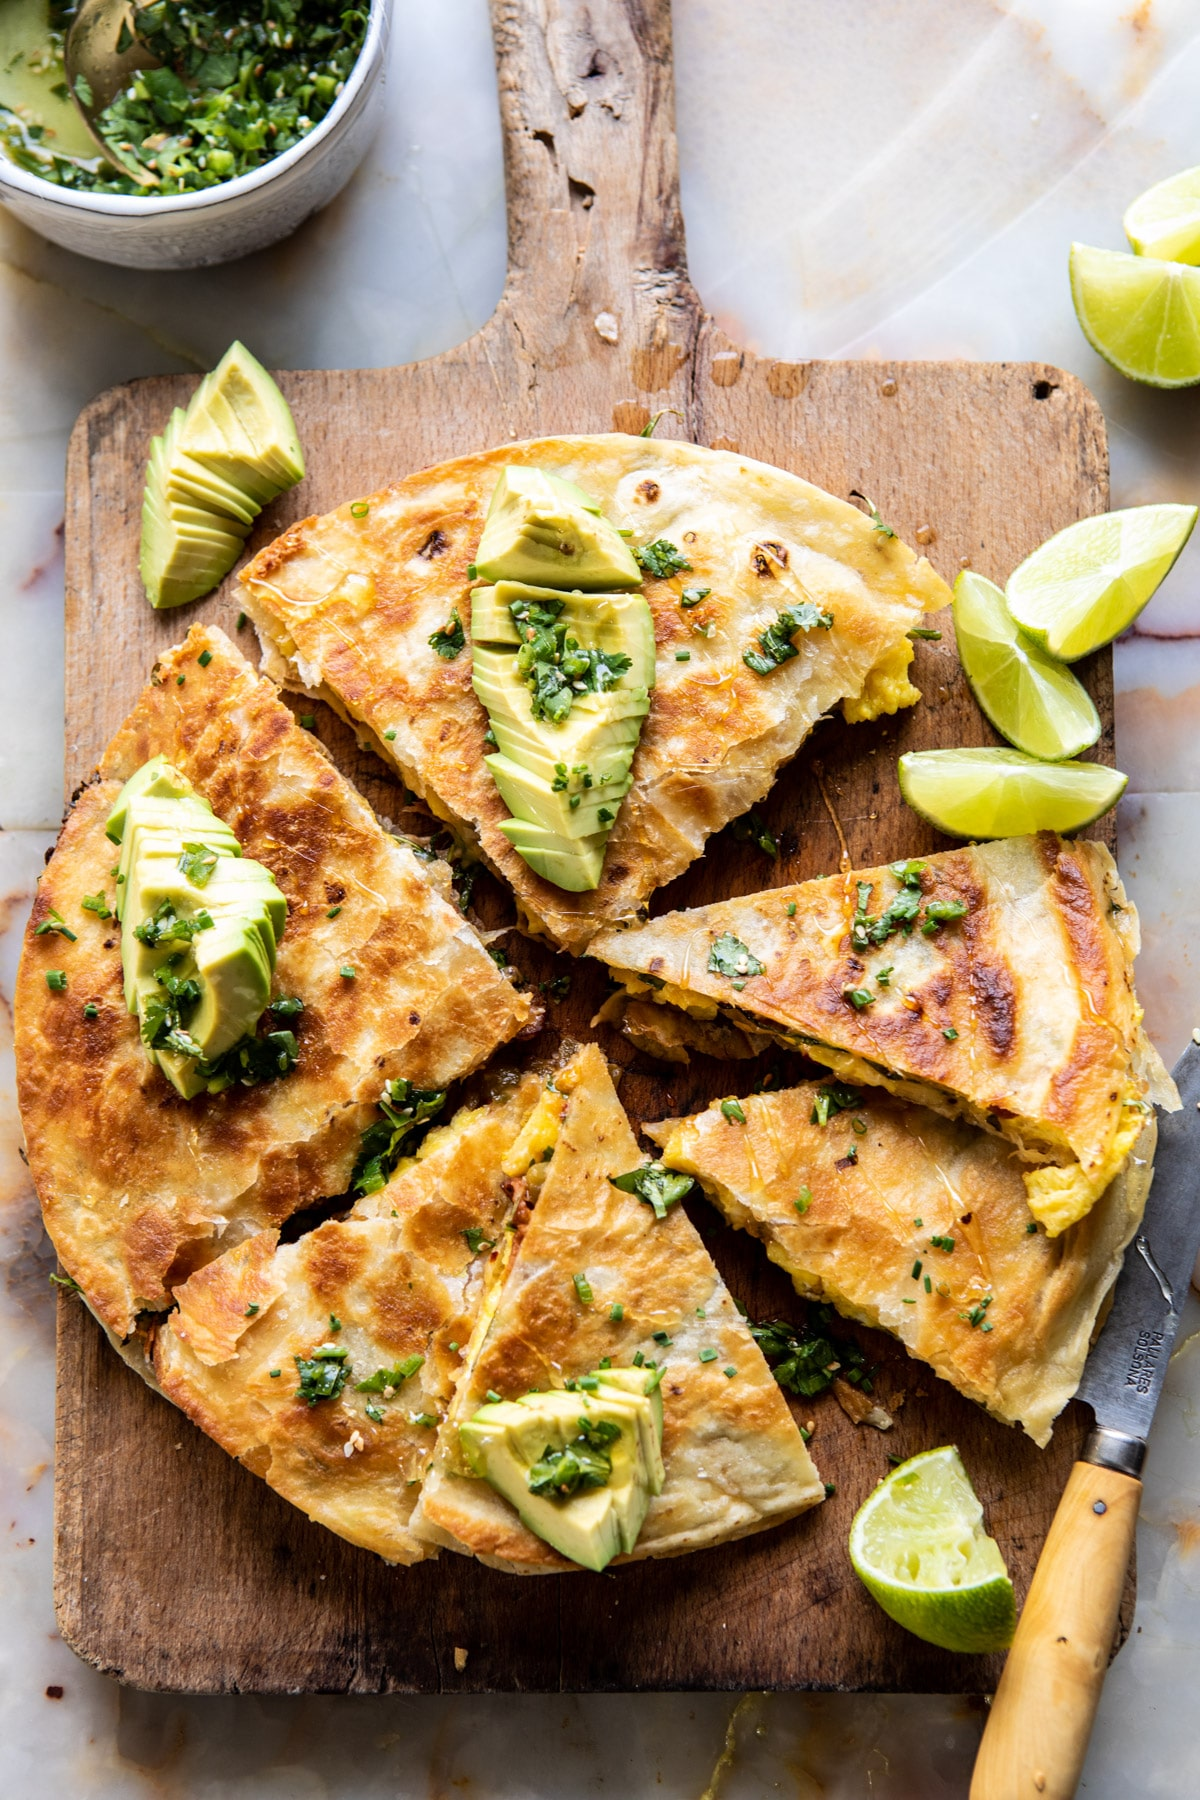 Breakfast Quesadilla with Soft Scrambled Eggs and Avocado Salsa